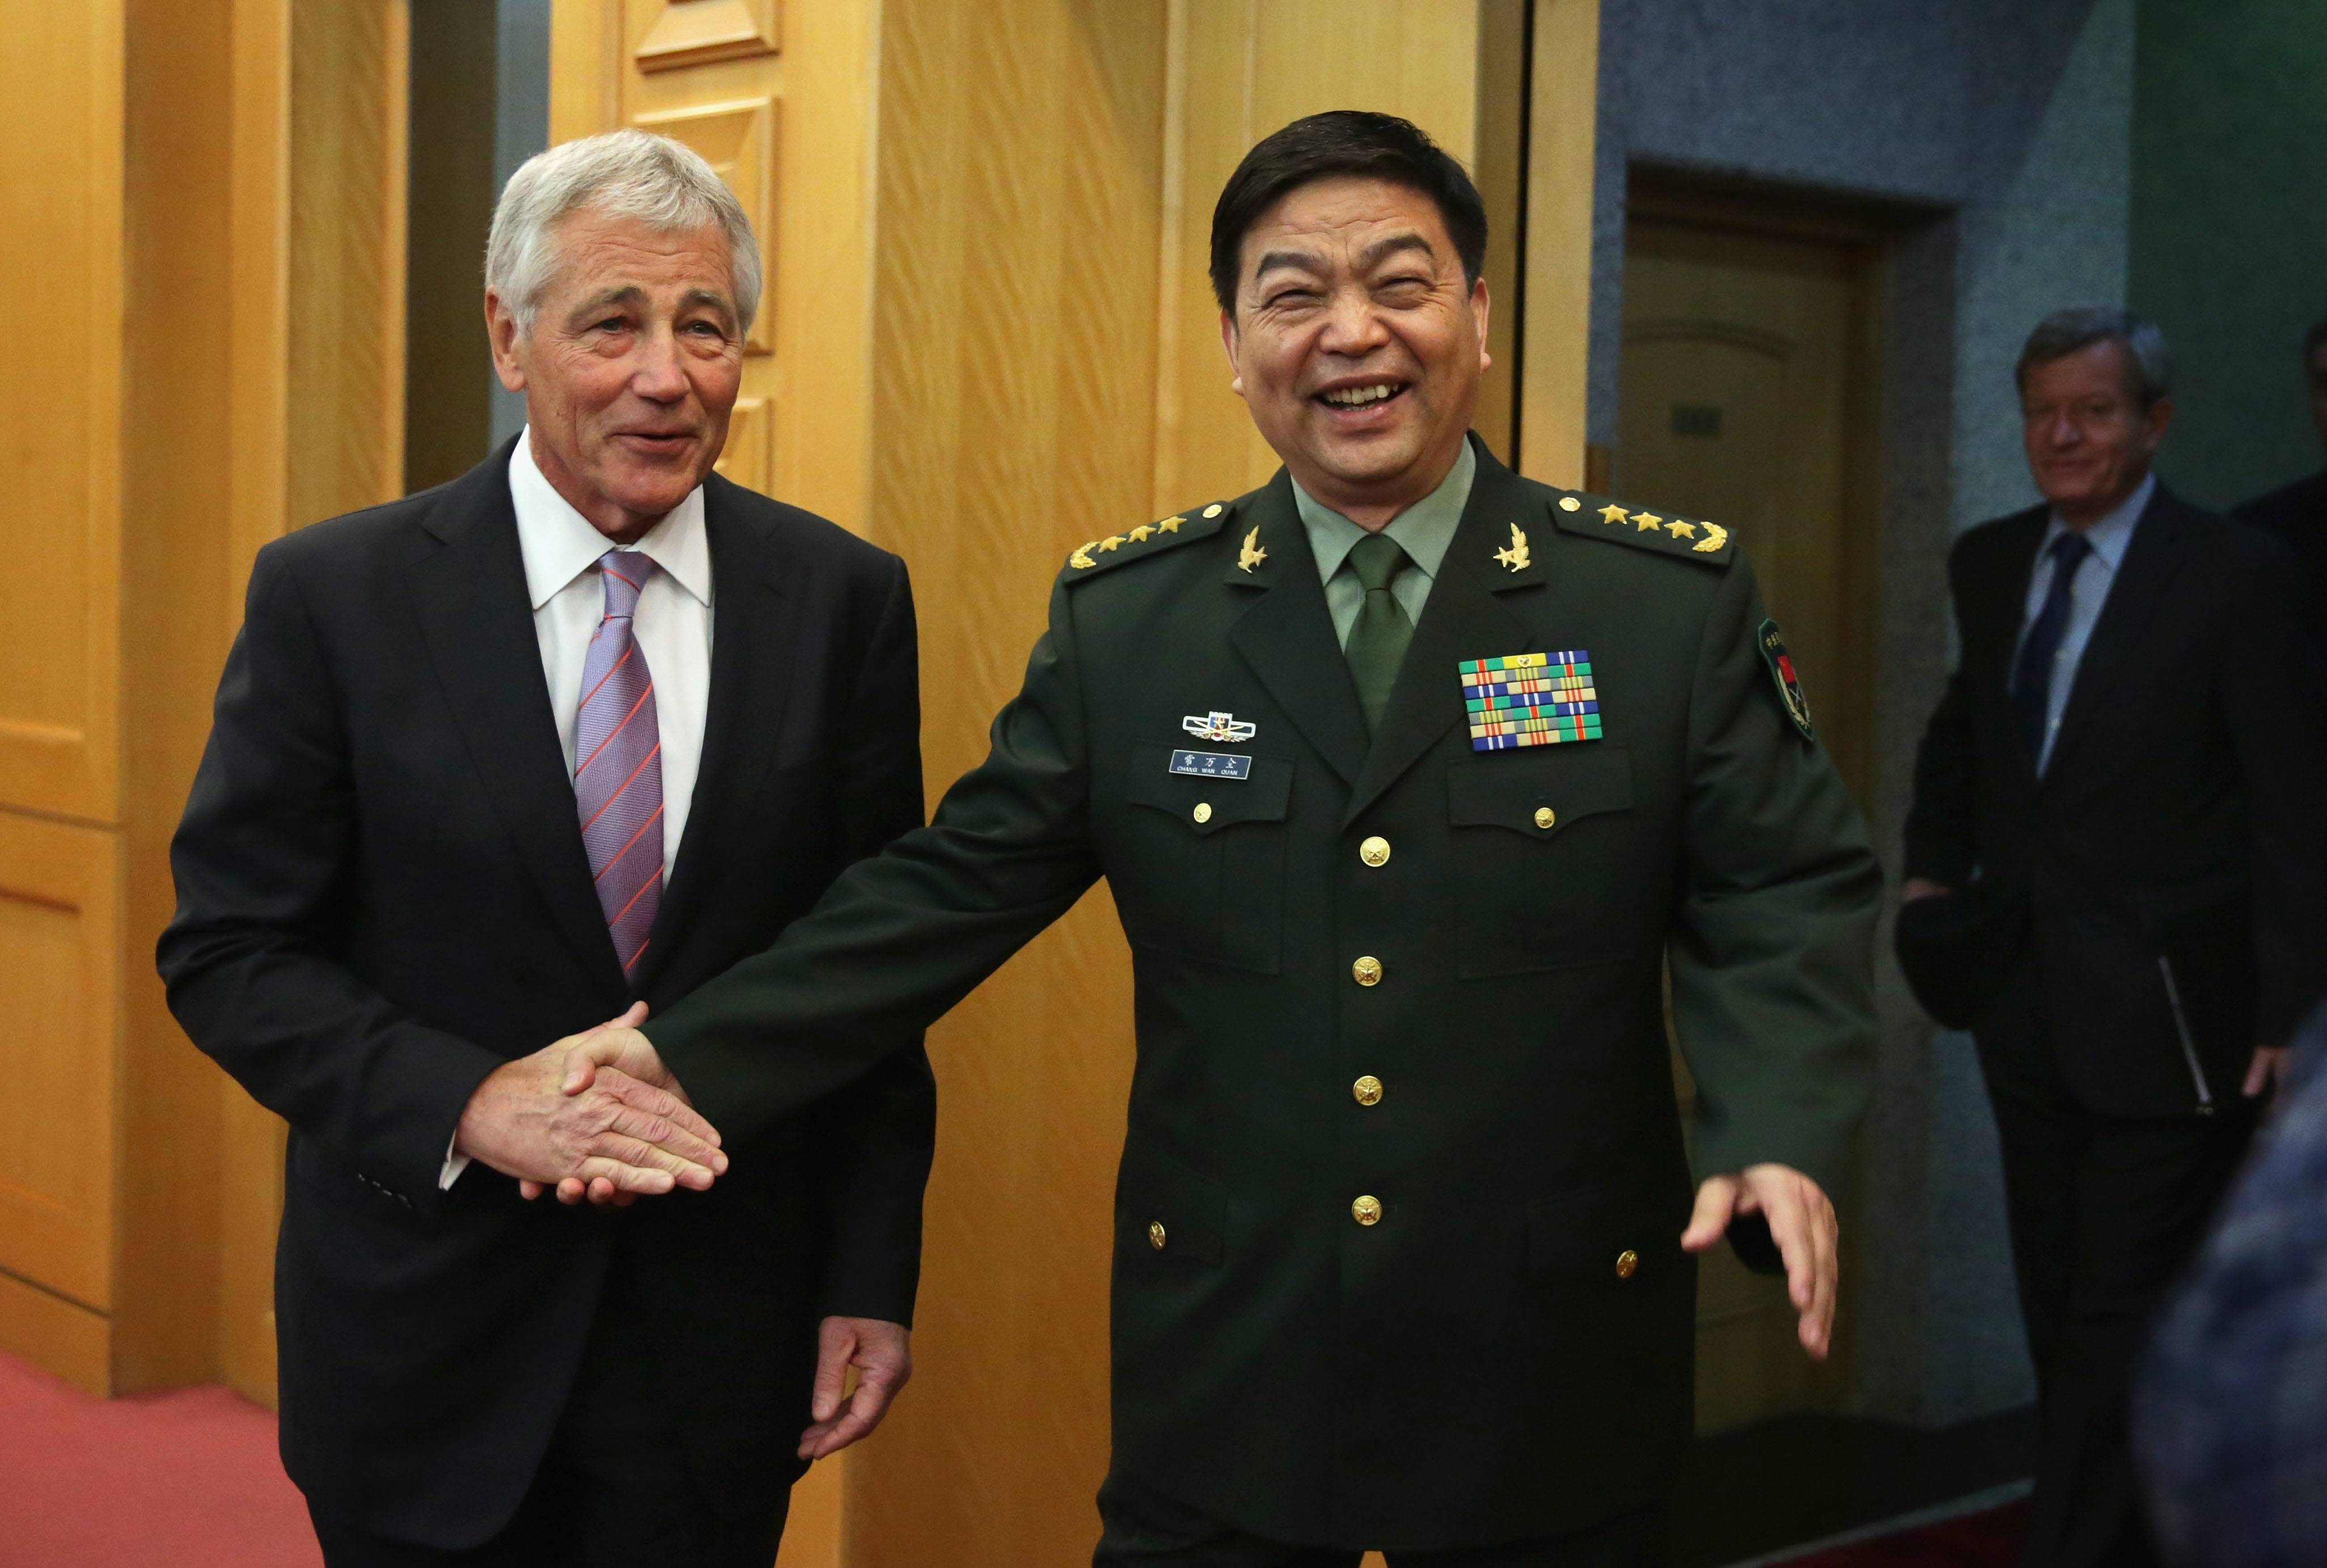 Defense Secretary Chuck Hagel shakes hands with Chinese Minister of Defense Chang Wanquan prior to their meeting at the Chinese Defense Ministry headquarters in Beijing, Tuesday, April 8, 2014.